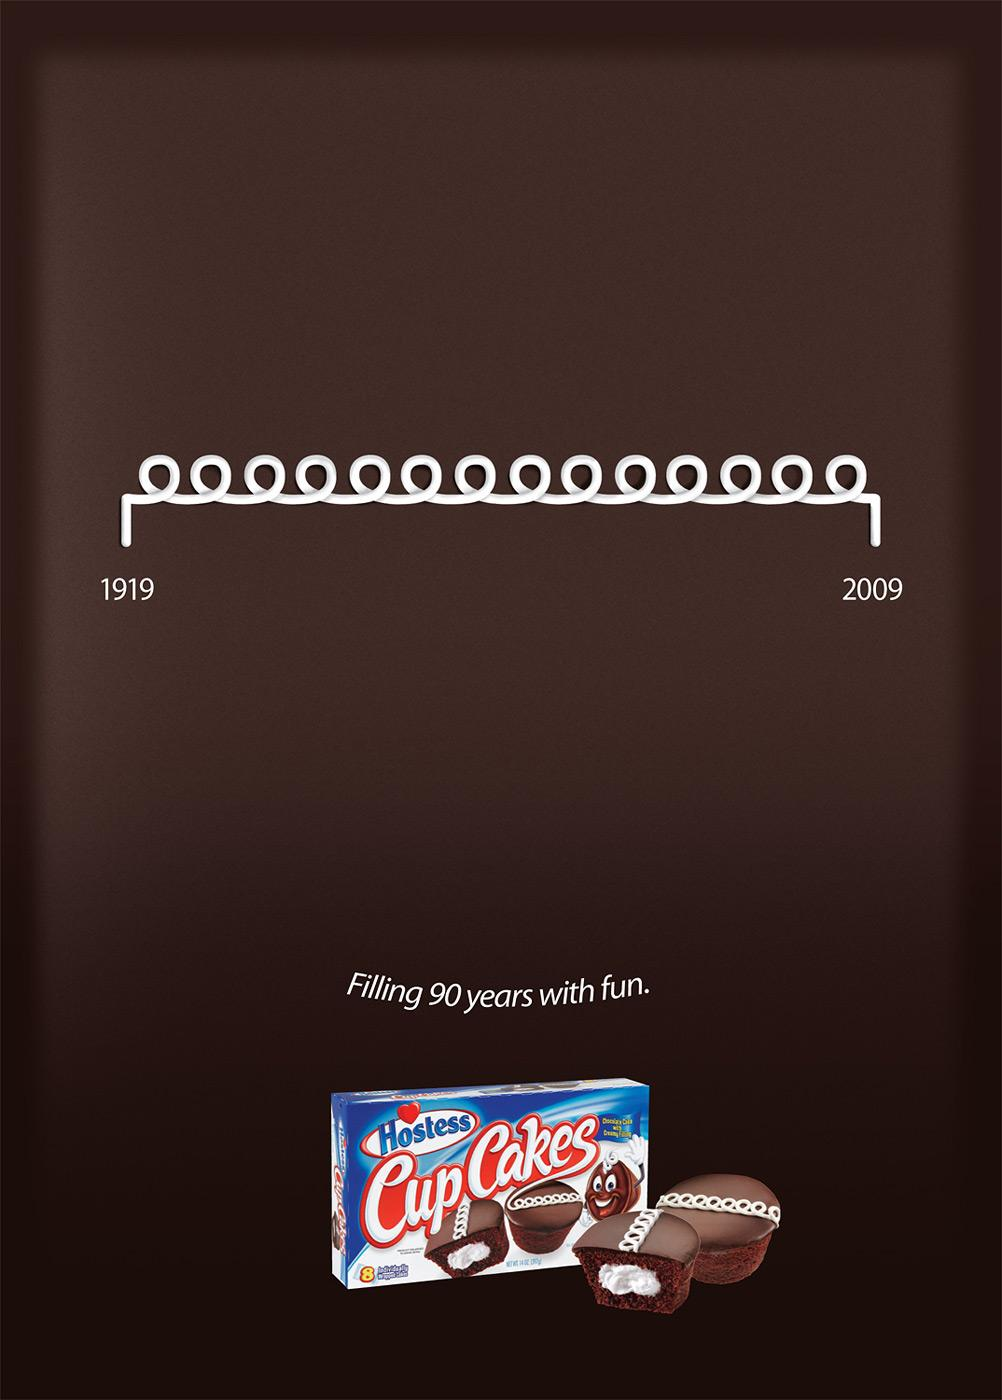 Hostess CupCakes Print Ad -  Filling 90 years with fun